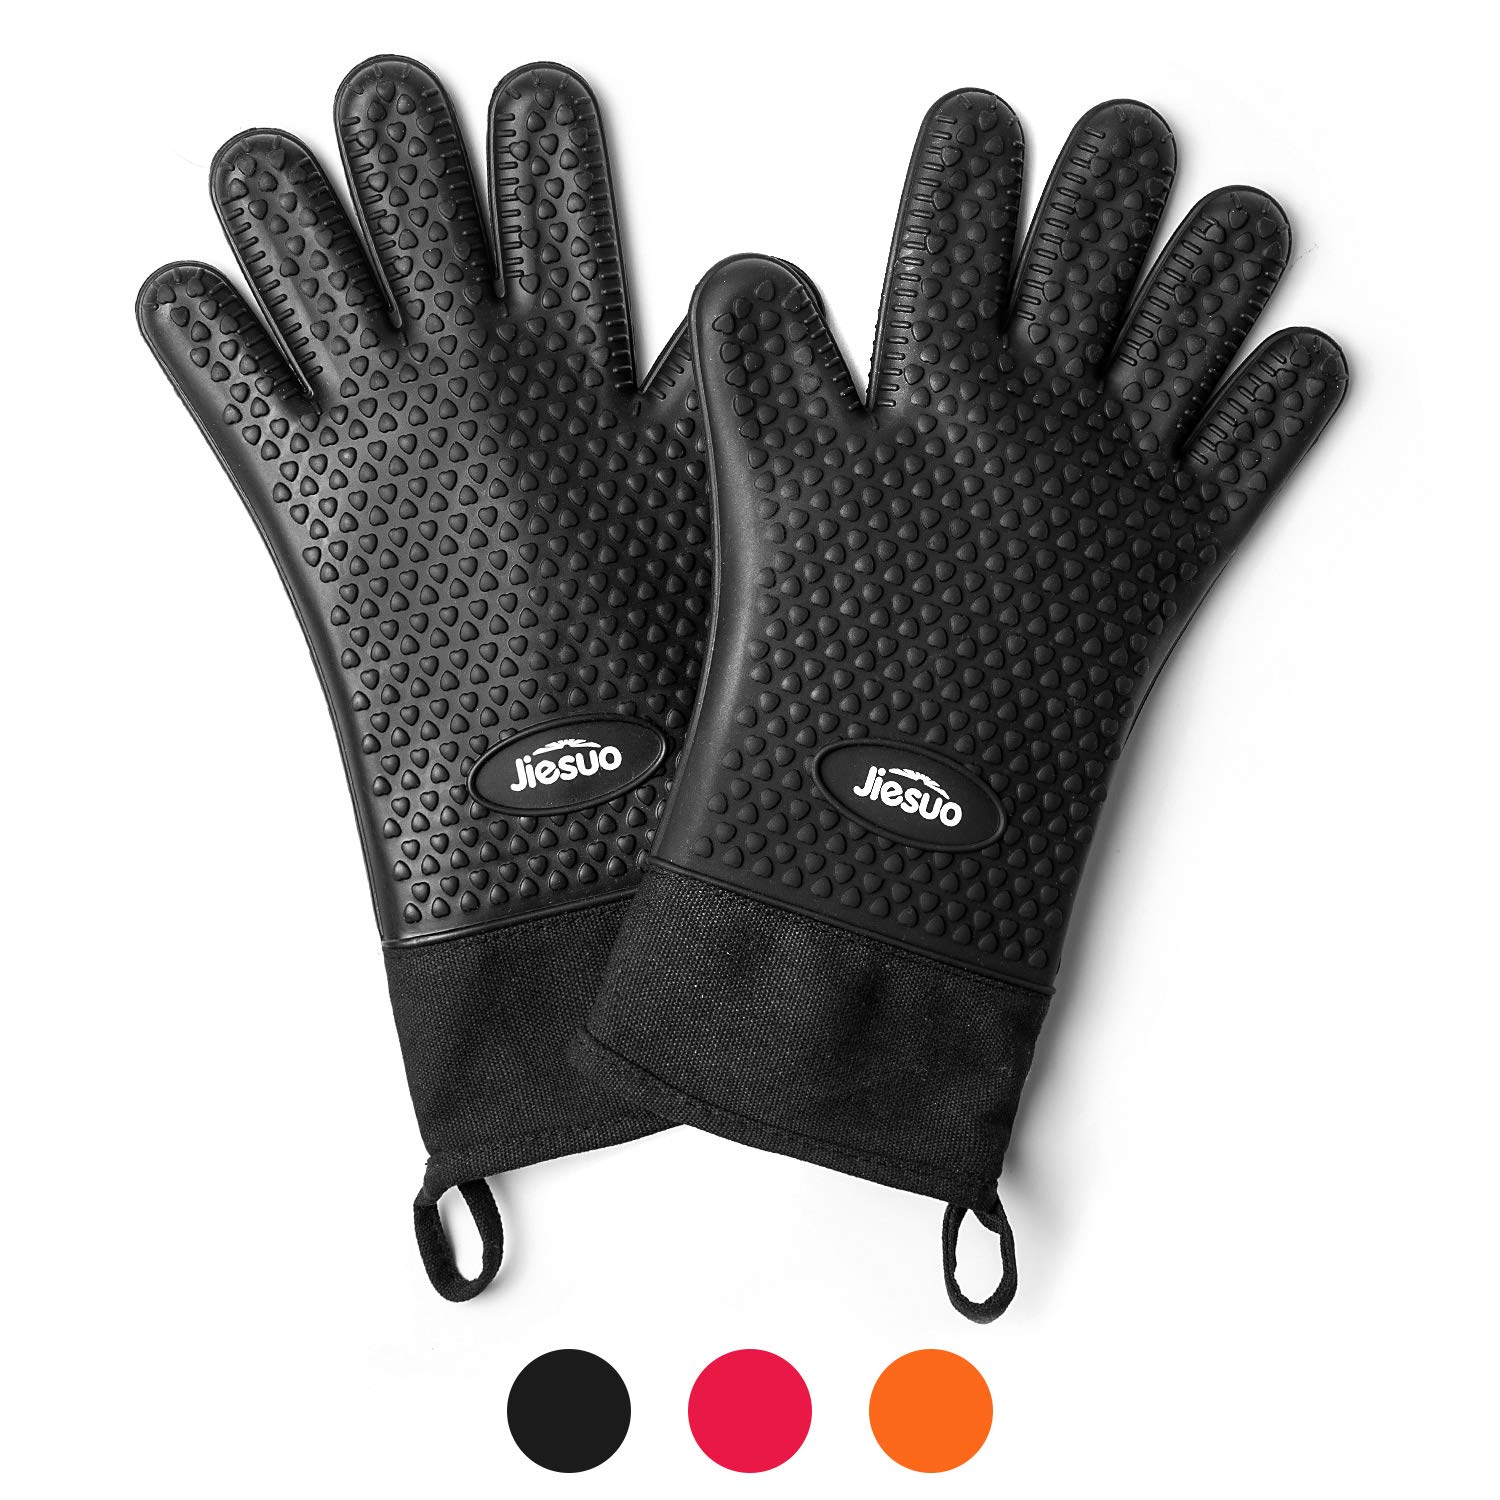 JIESUO BBQ Grill Gloves, Extra-Long Silicone Oven Mitts Heat Resistant Gloves for Kitchen Baking Cooking and Grilling, in FDA Grade Waterproof Non-Slip Potholder Gloves (Black)